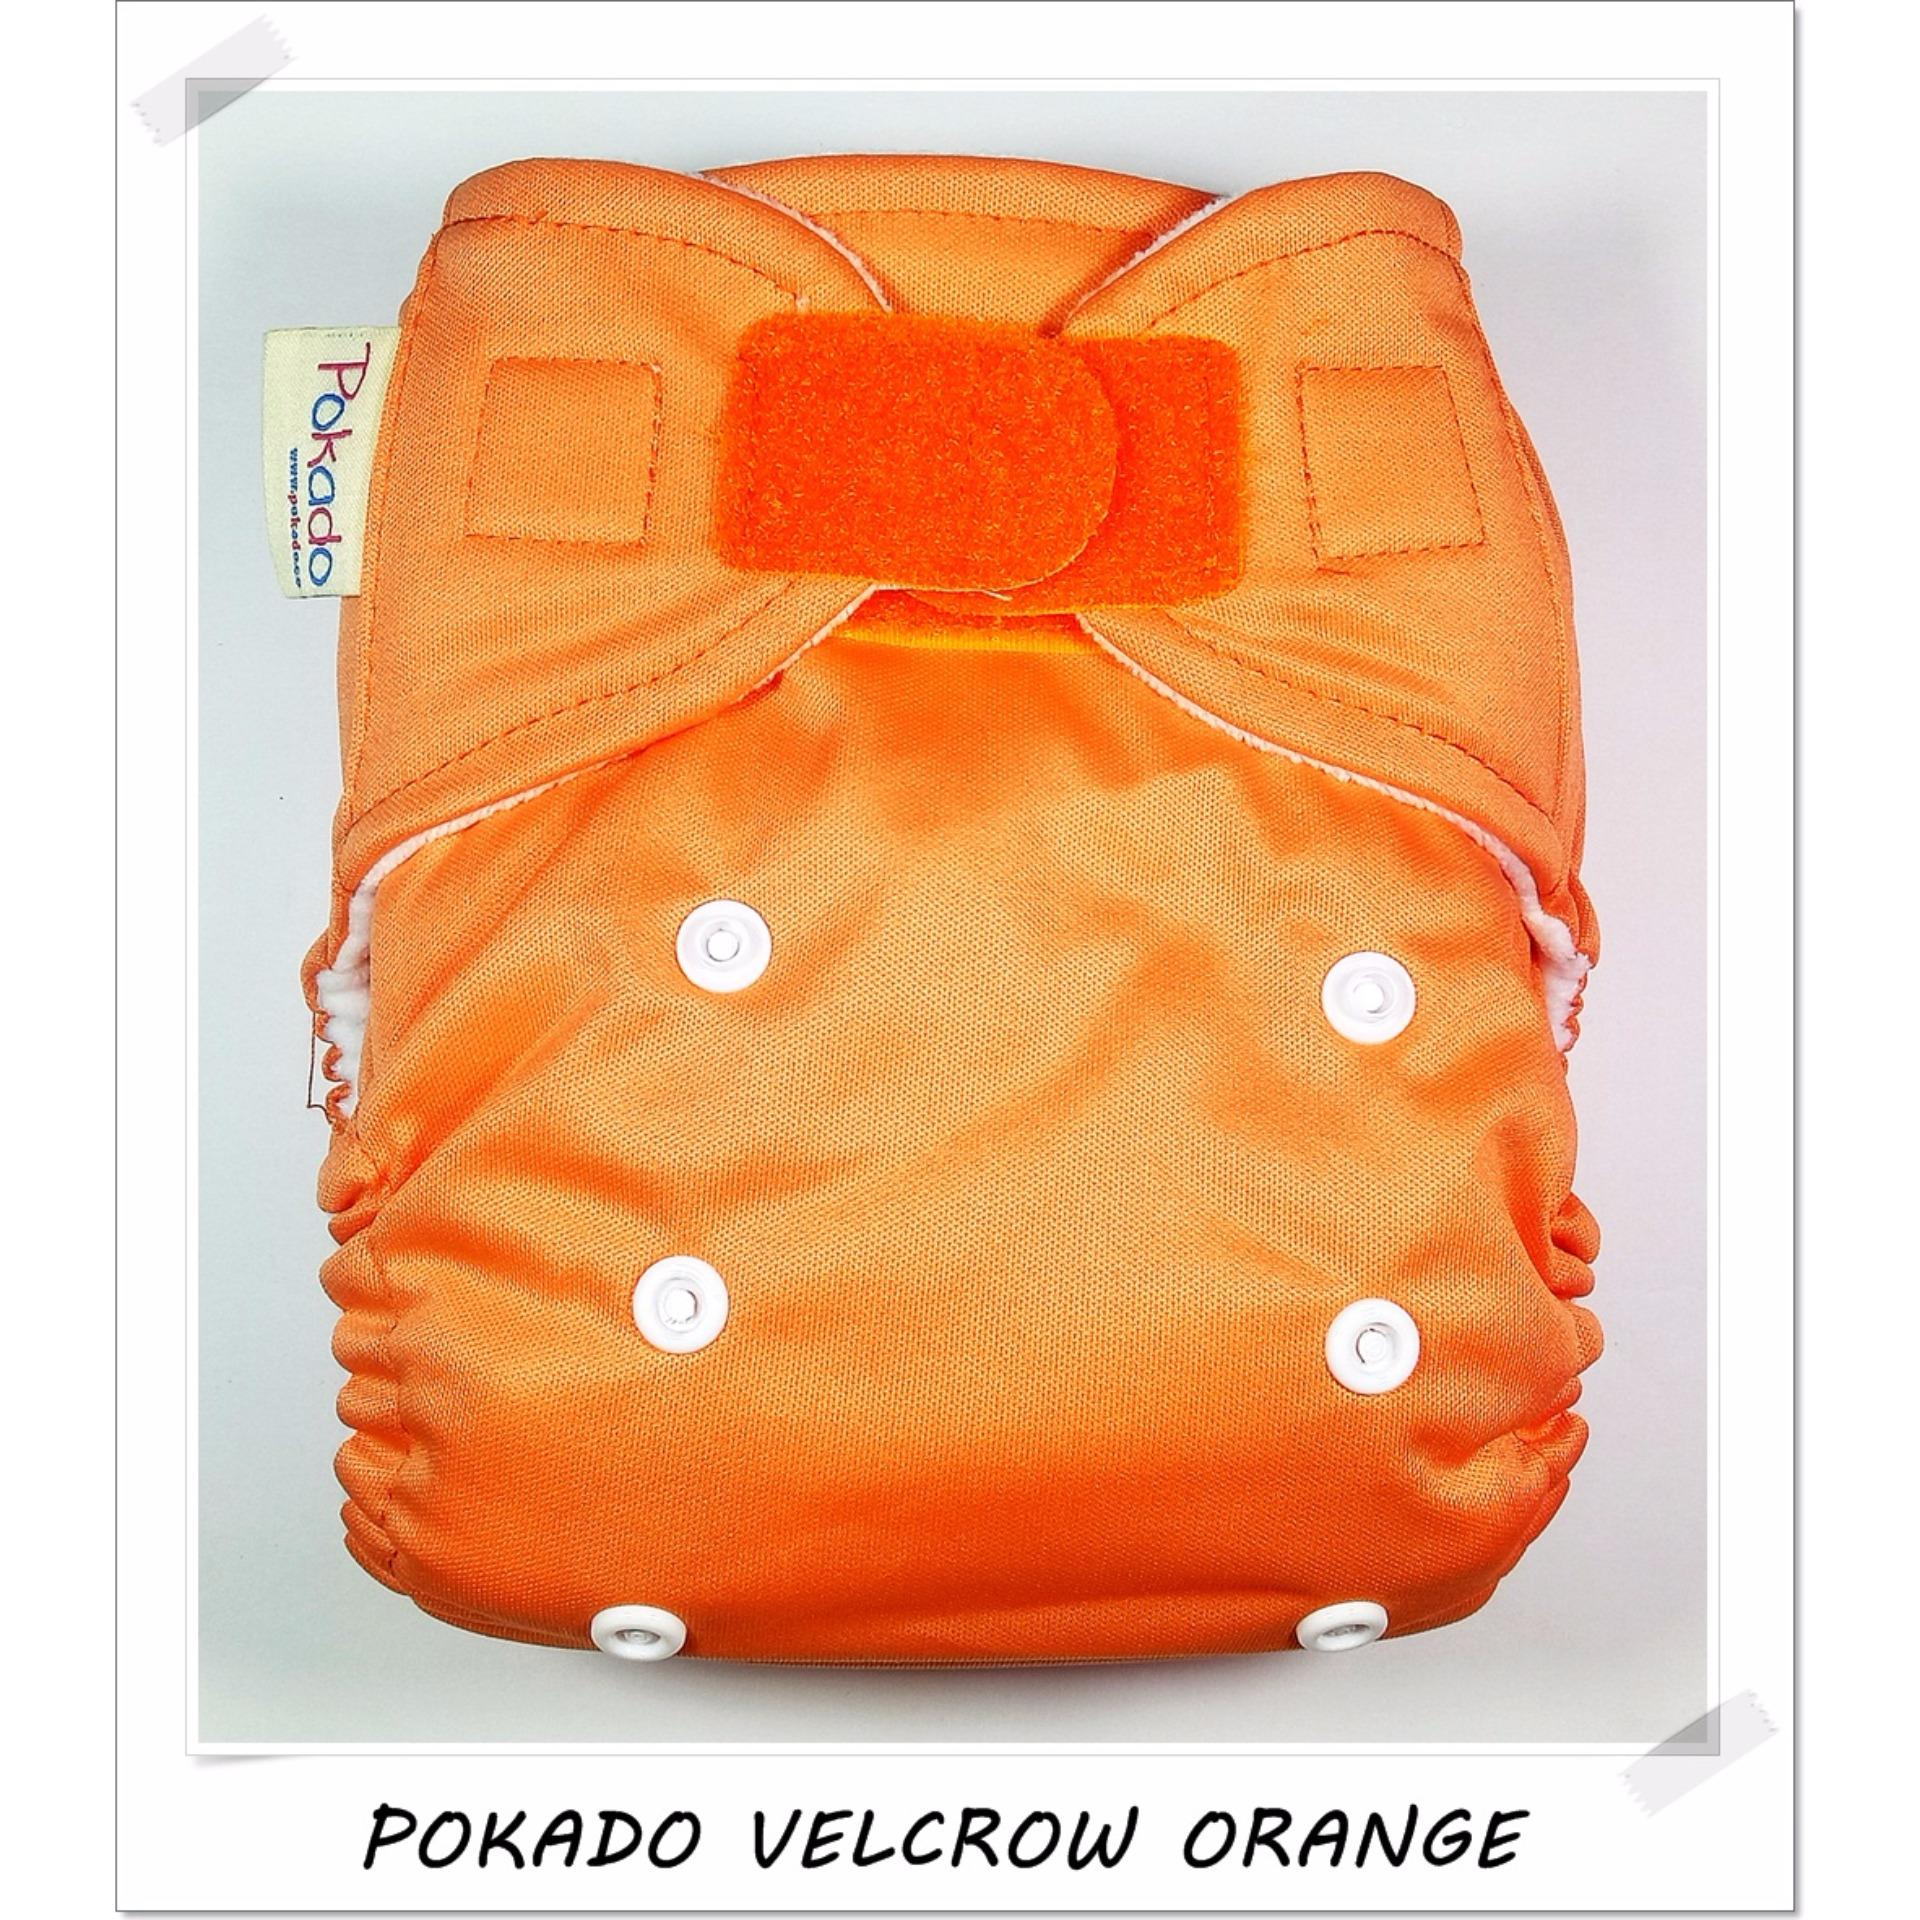 Pokado Popok Kain Cuci Ulang Velcrow Cloth Diapers Motif Animals Source Pokado Popok .